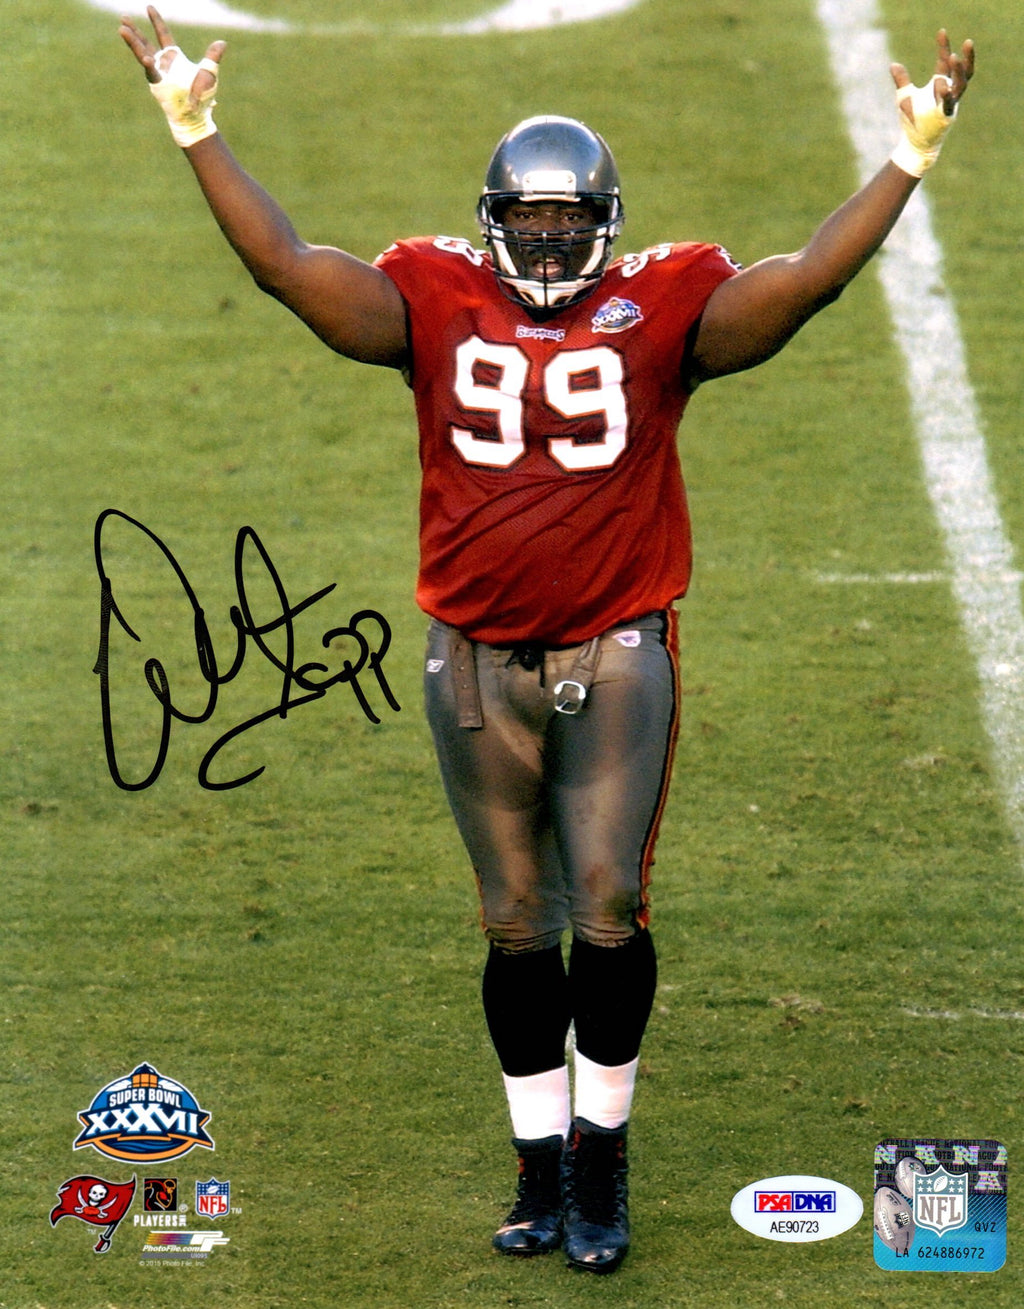 Warren Sapp autographed signed 8x10 photo NFL Tampa Bay Buccaneers PSA COA